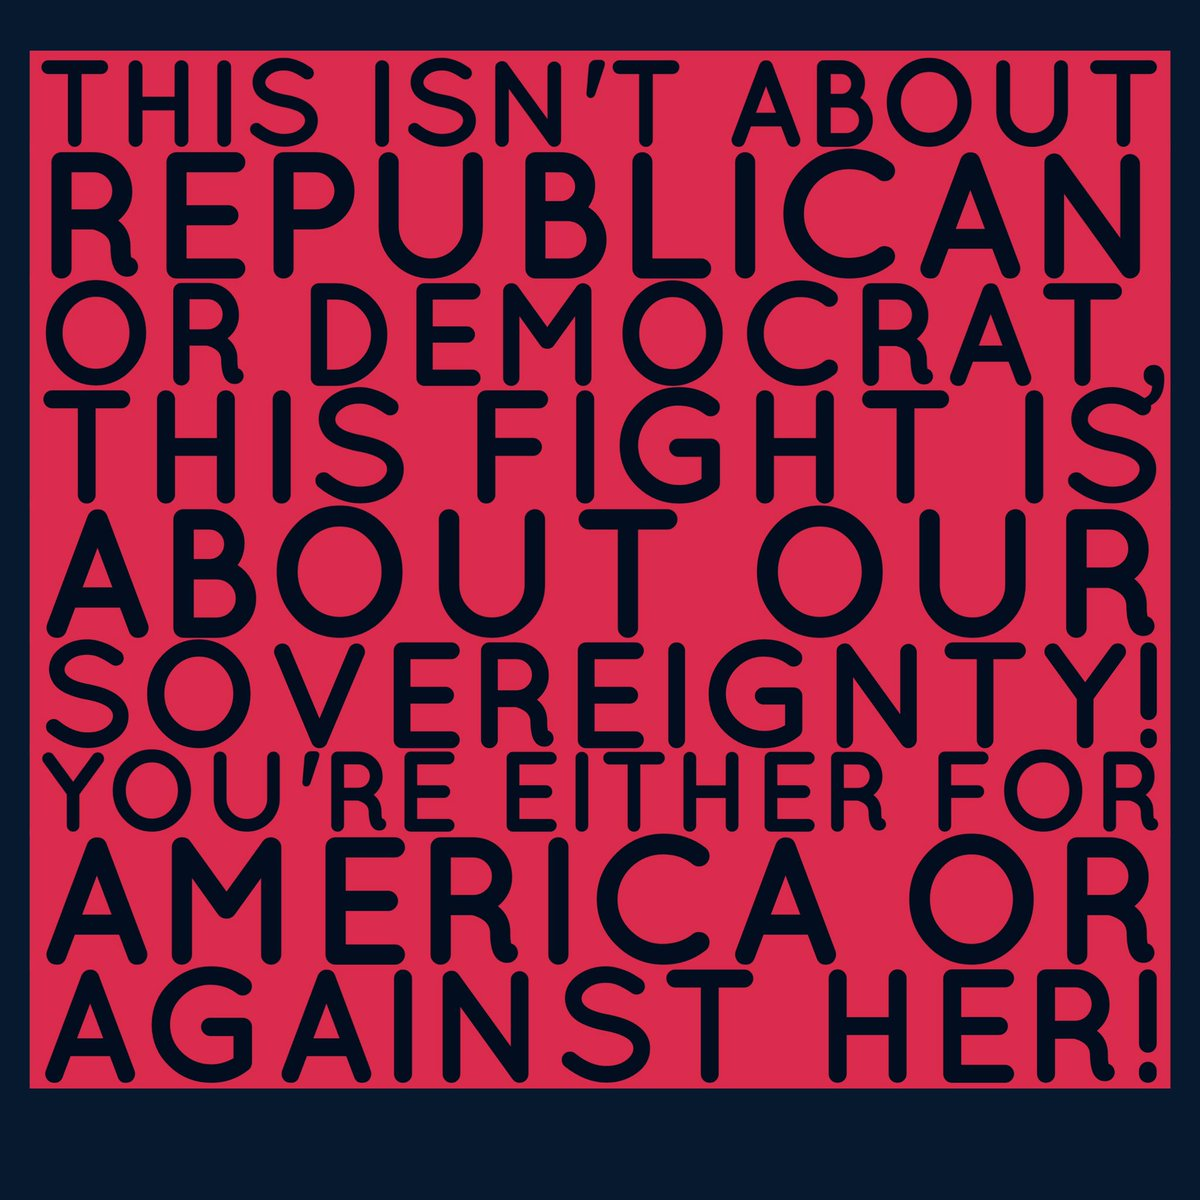 This isn&#39;t about republican or democrat. This fight, our fight is about our sovereignty! You&#39;re either for America or against her! ~ #MAGA <br>http://pic.twitter.com/aYG2hbDZyb